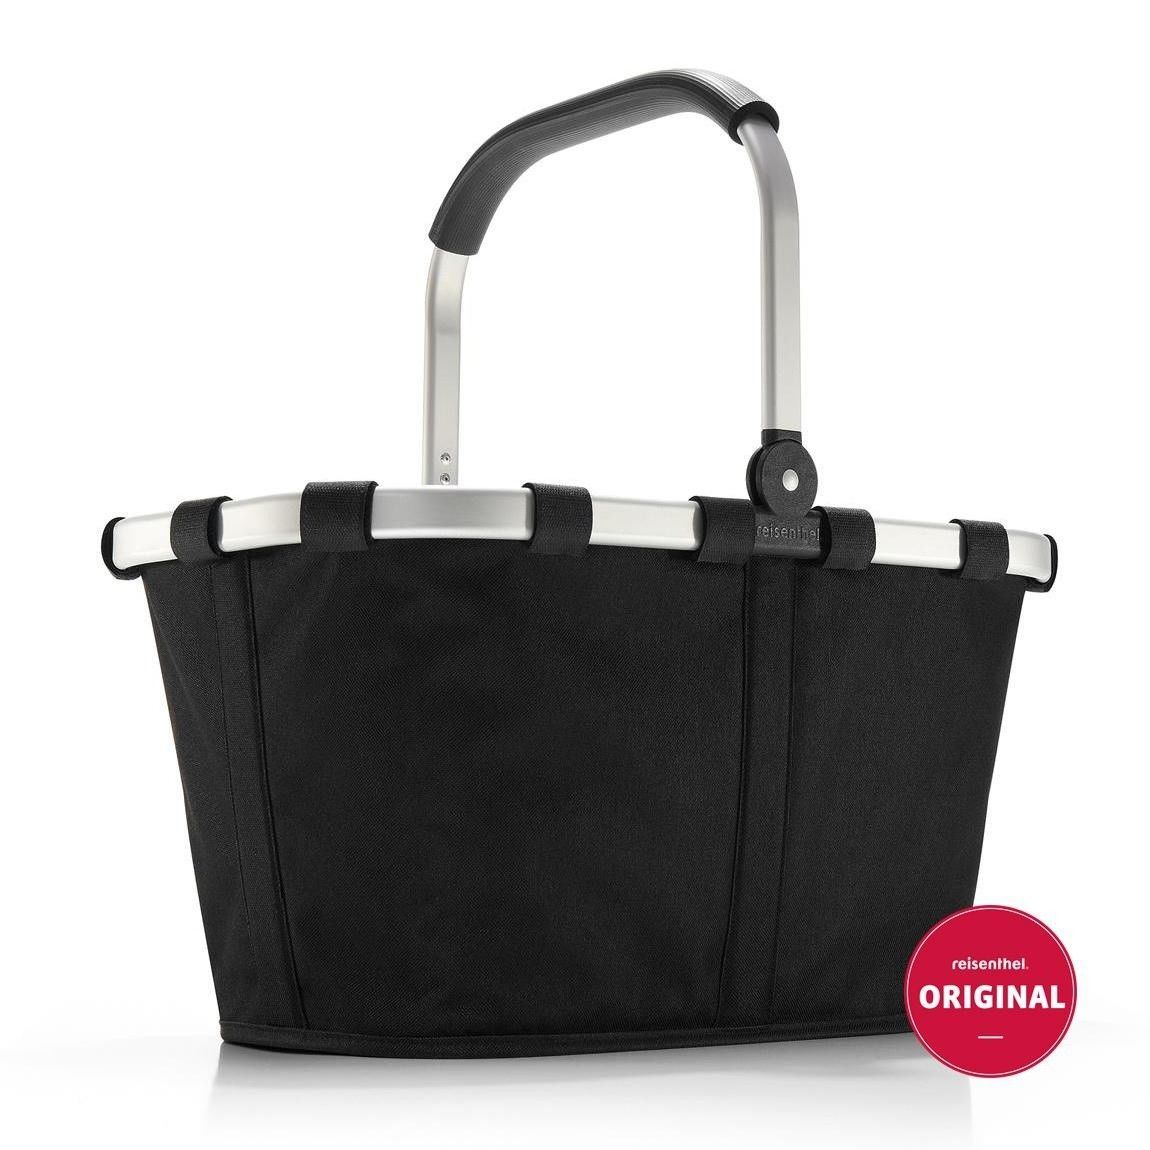 Reisenthel Carrybag Schwarz : reisenthel carrybag shopping bag reisenthel ~ Orissabook.com Haus und Dekorationen